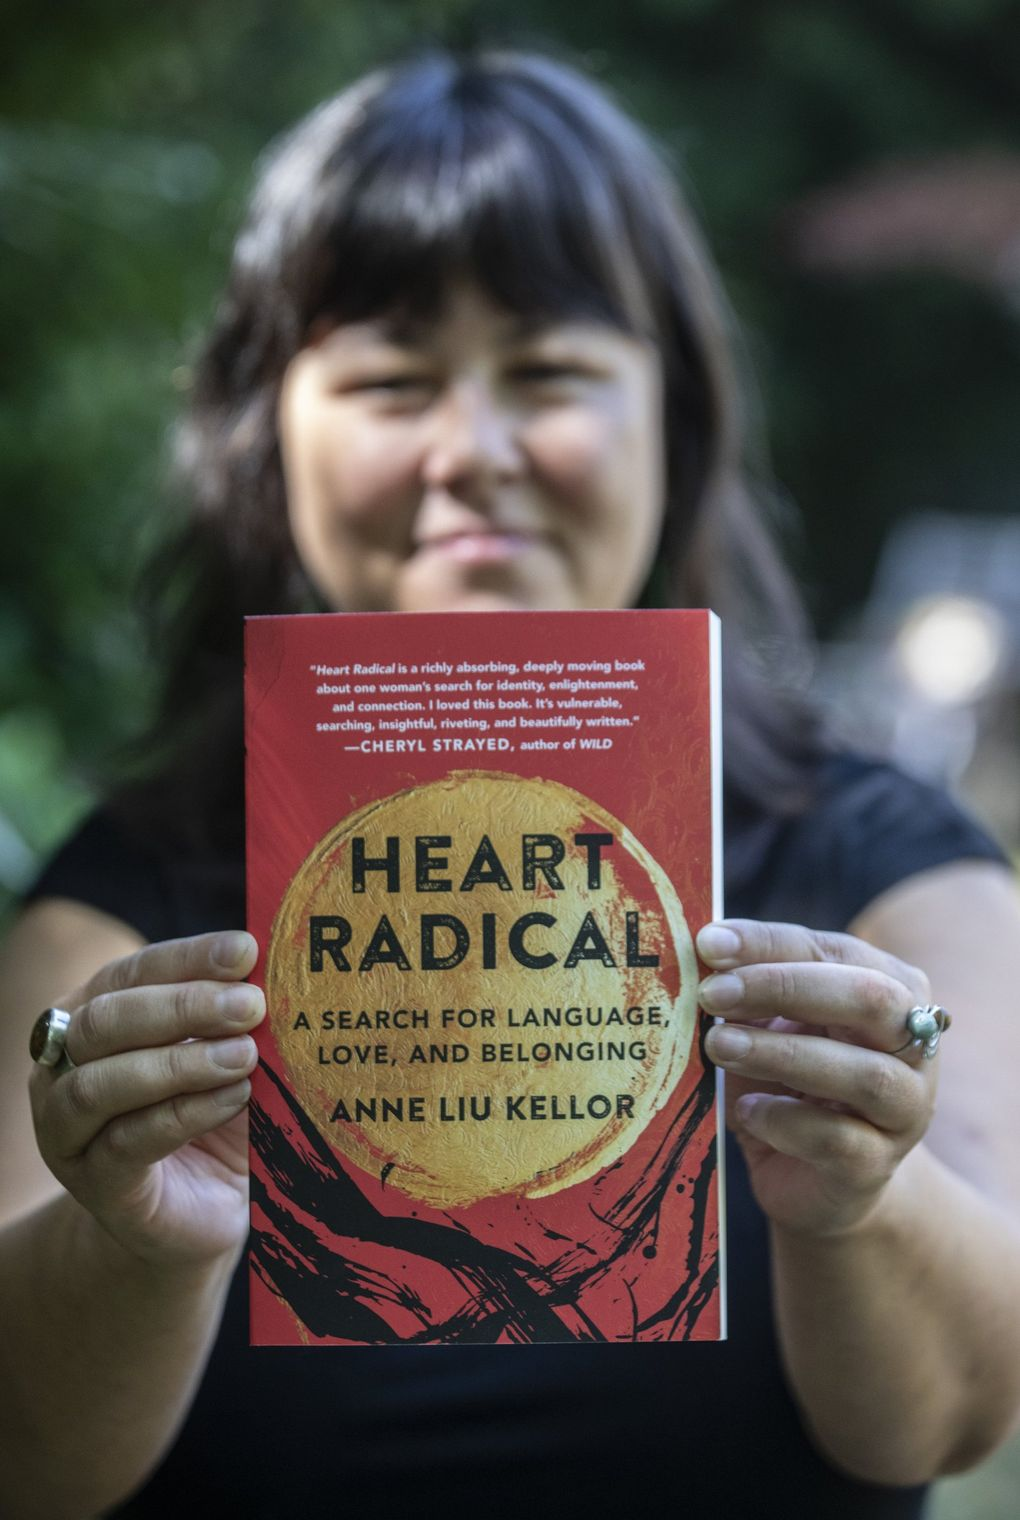 """Anne Liu Kellor shows off her debut memoir """"Heart Radical: A Search for Language, Love, and Belonging"""" Aug. 24, 2021, in North Seattle.   (Steve Ringman / The Seattle Times)"""